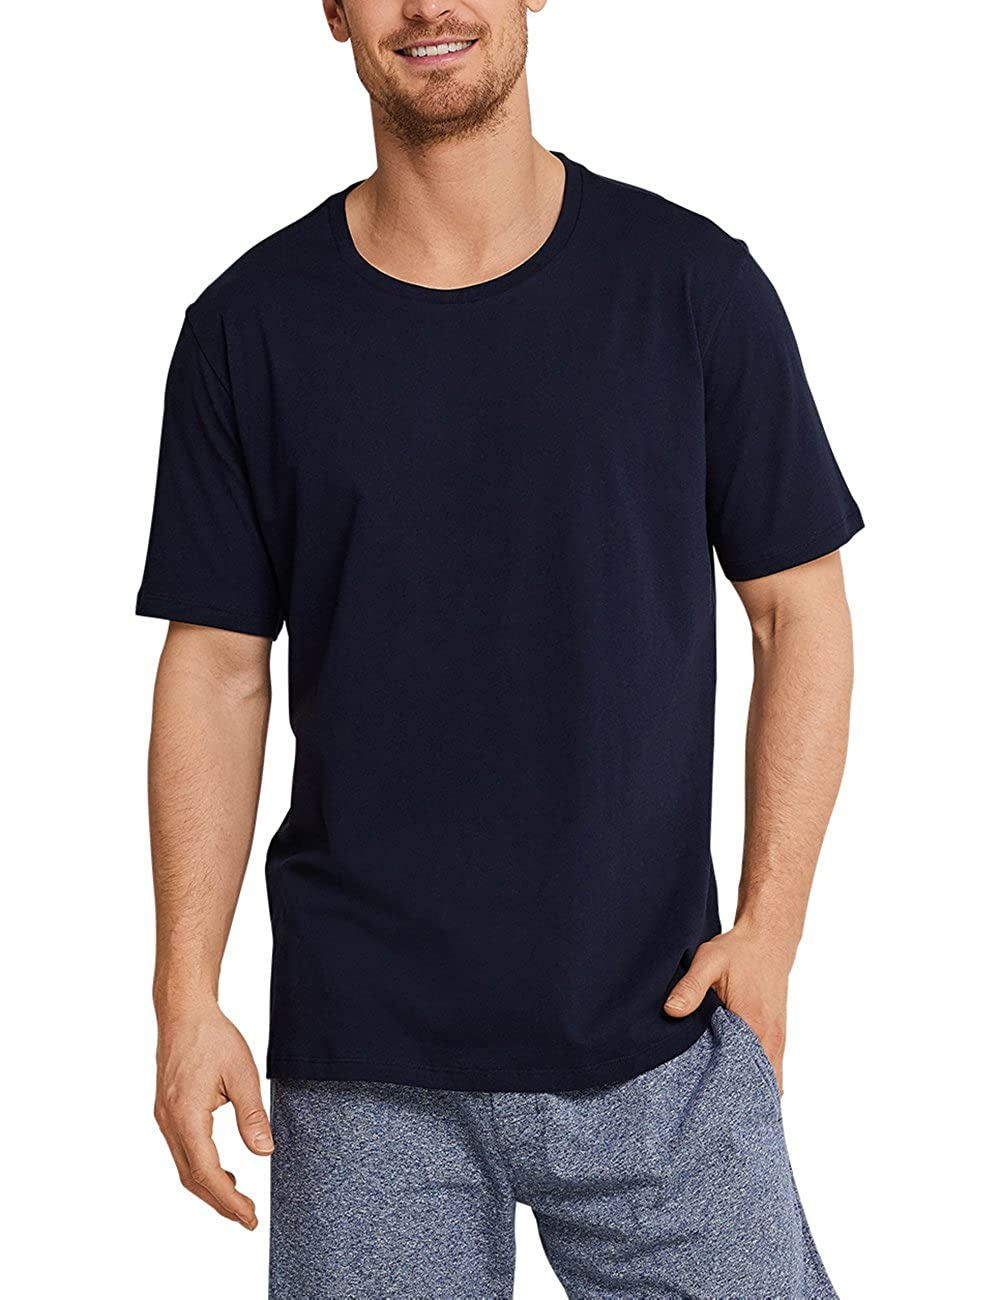 Schiesser Mens Mix /& Relax T-Shirt Rundhals Pyjama Top